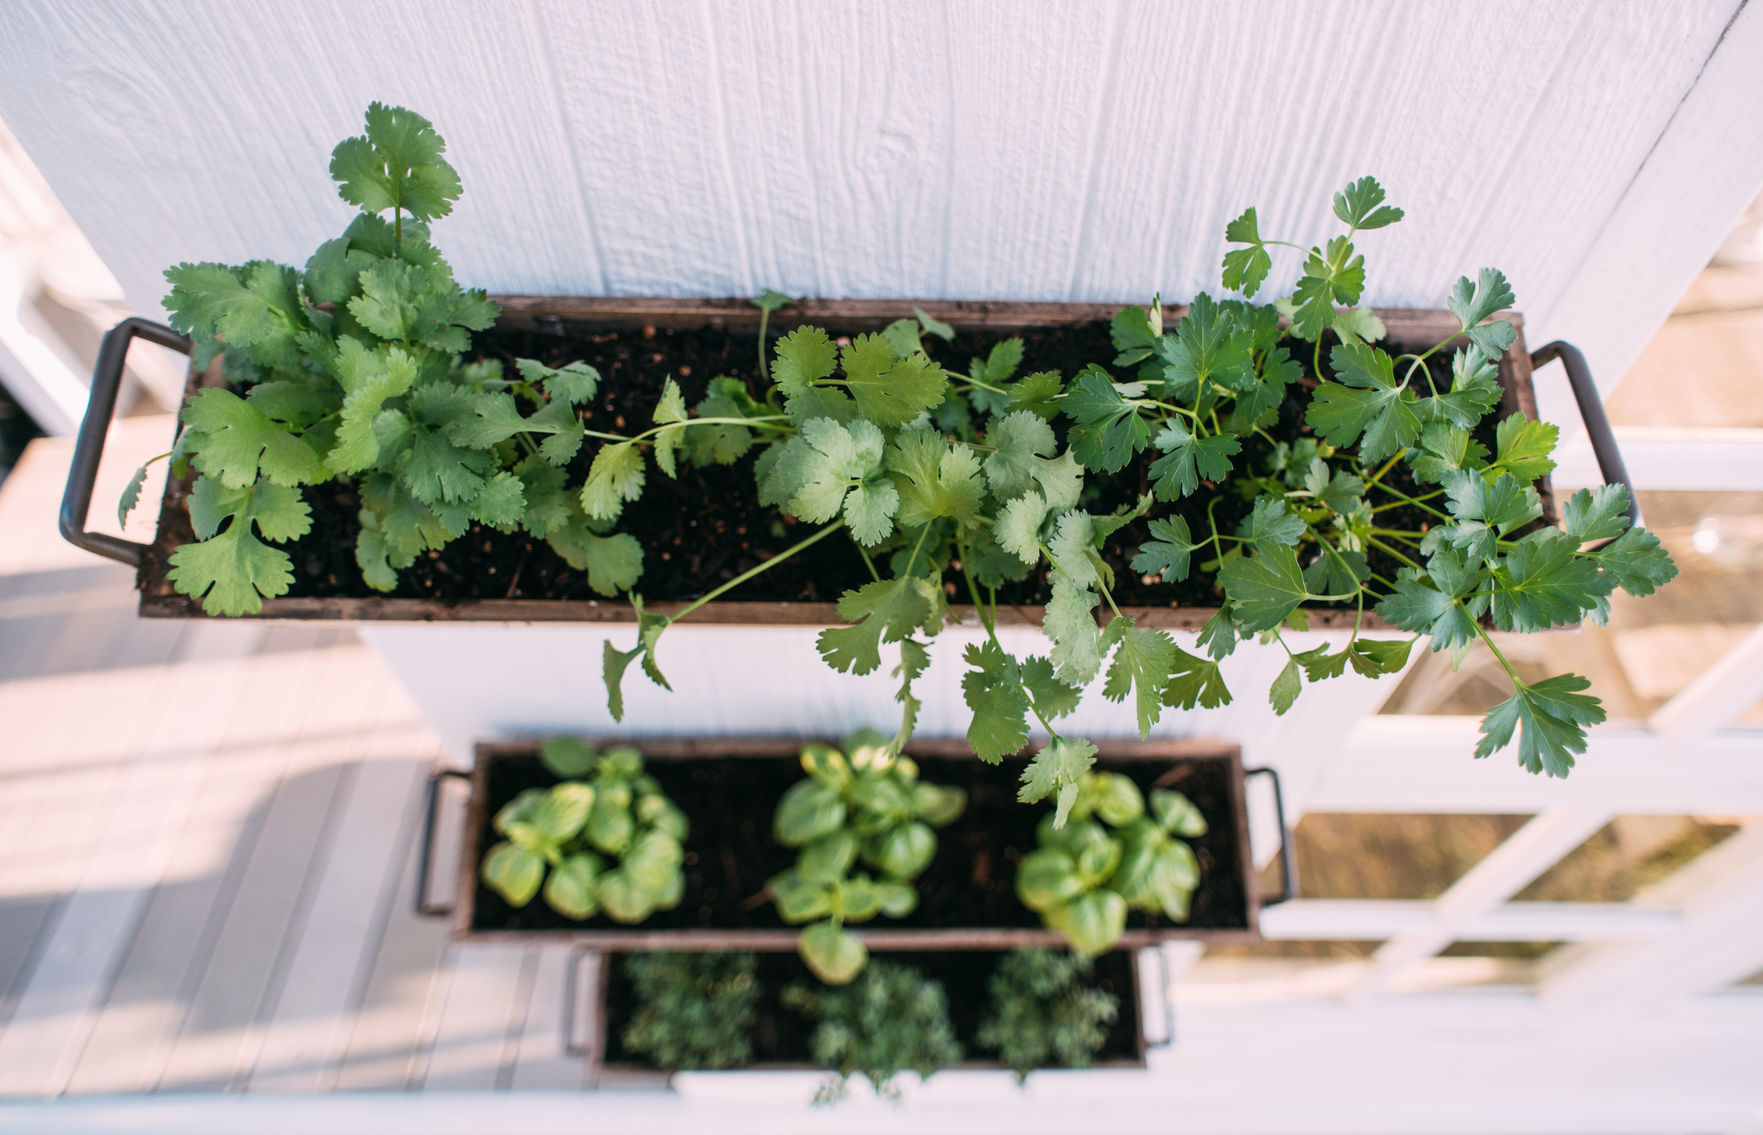 Fresh herbs in planter boxes hanging on the garden shed wall